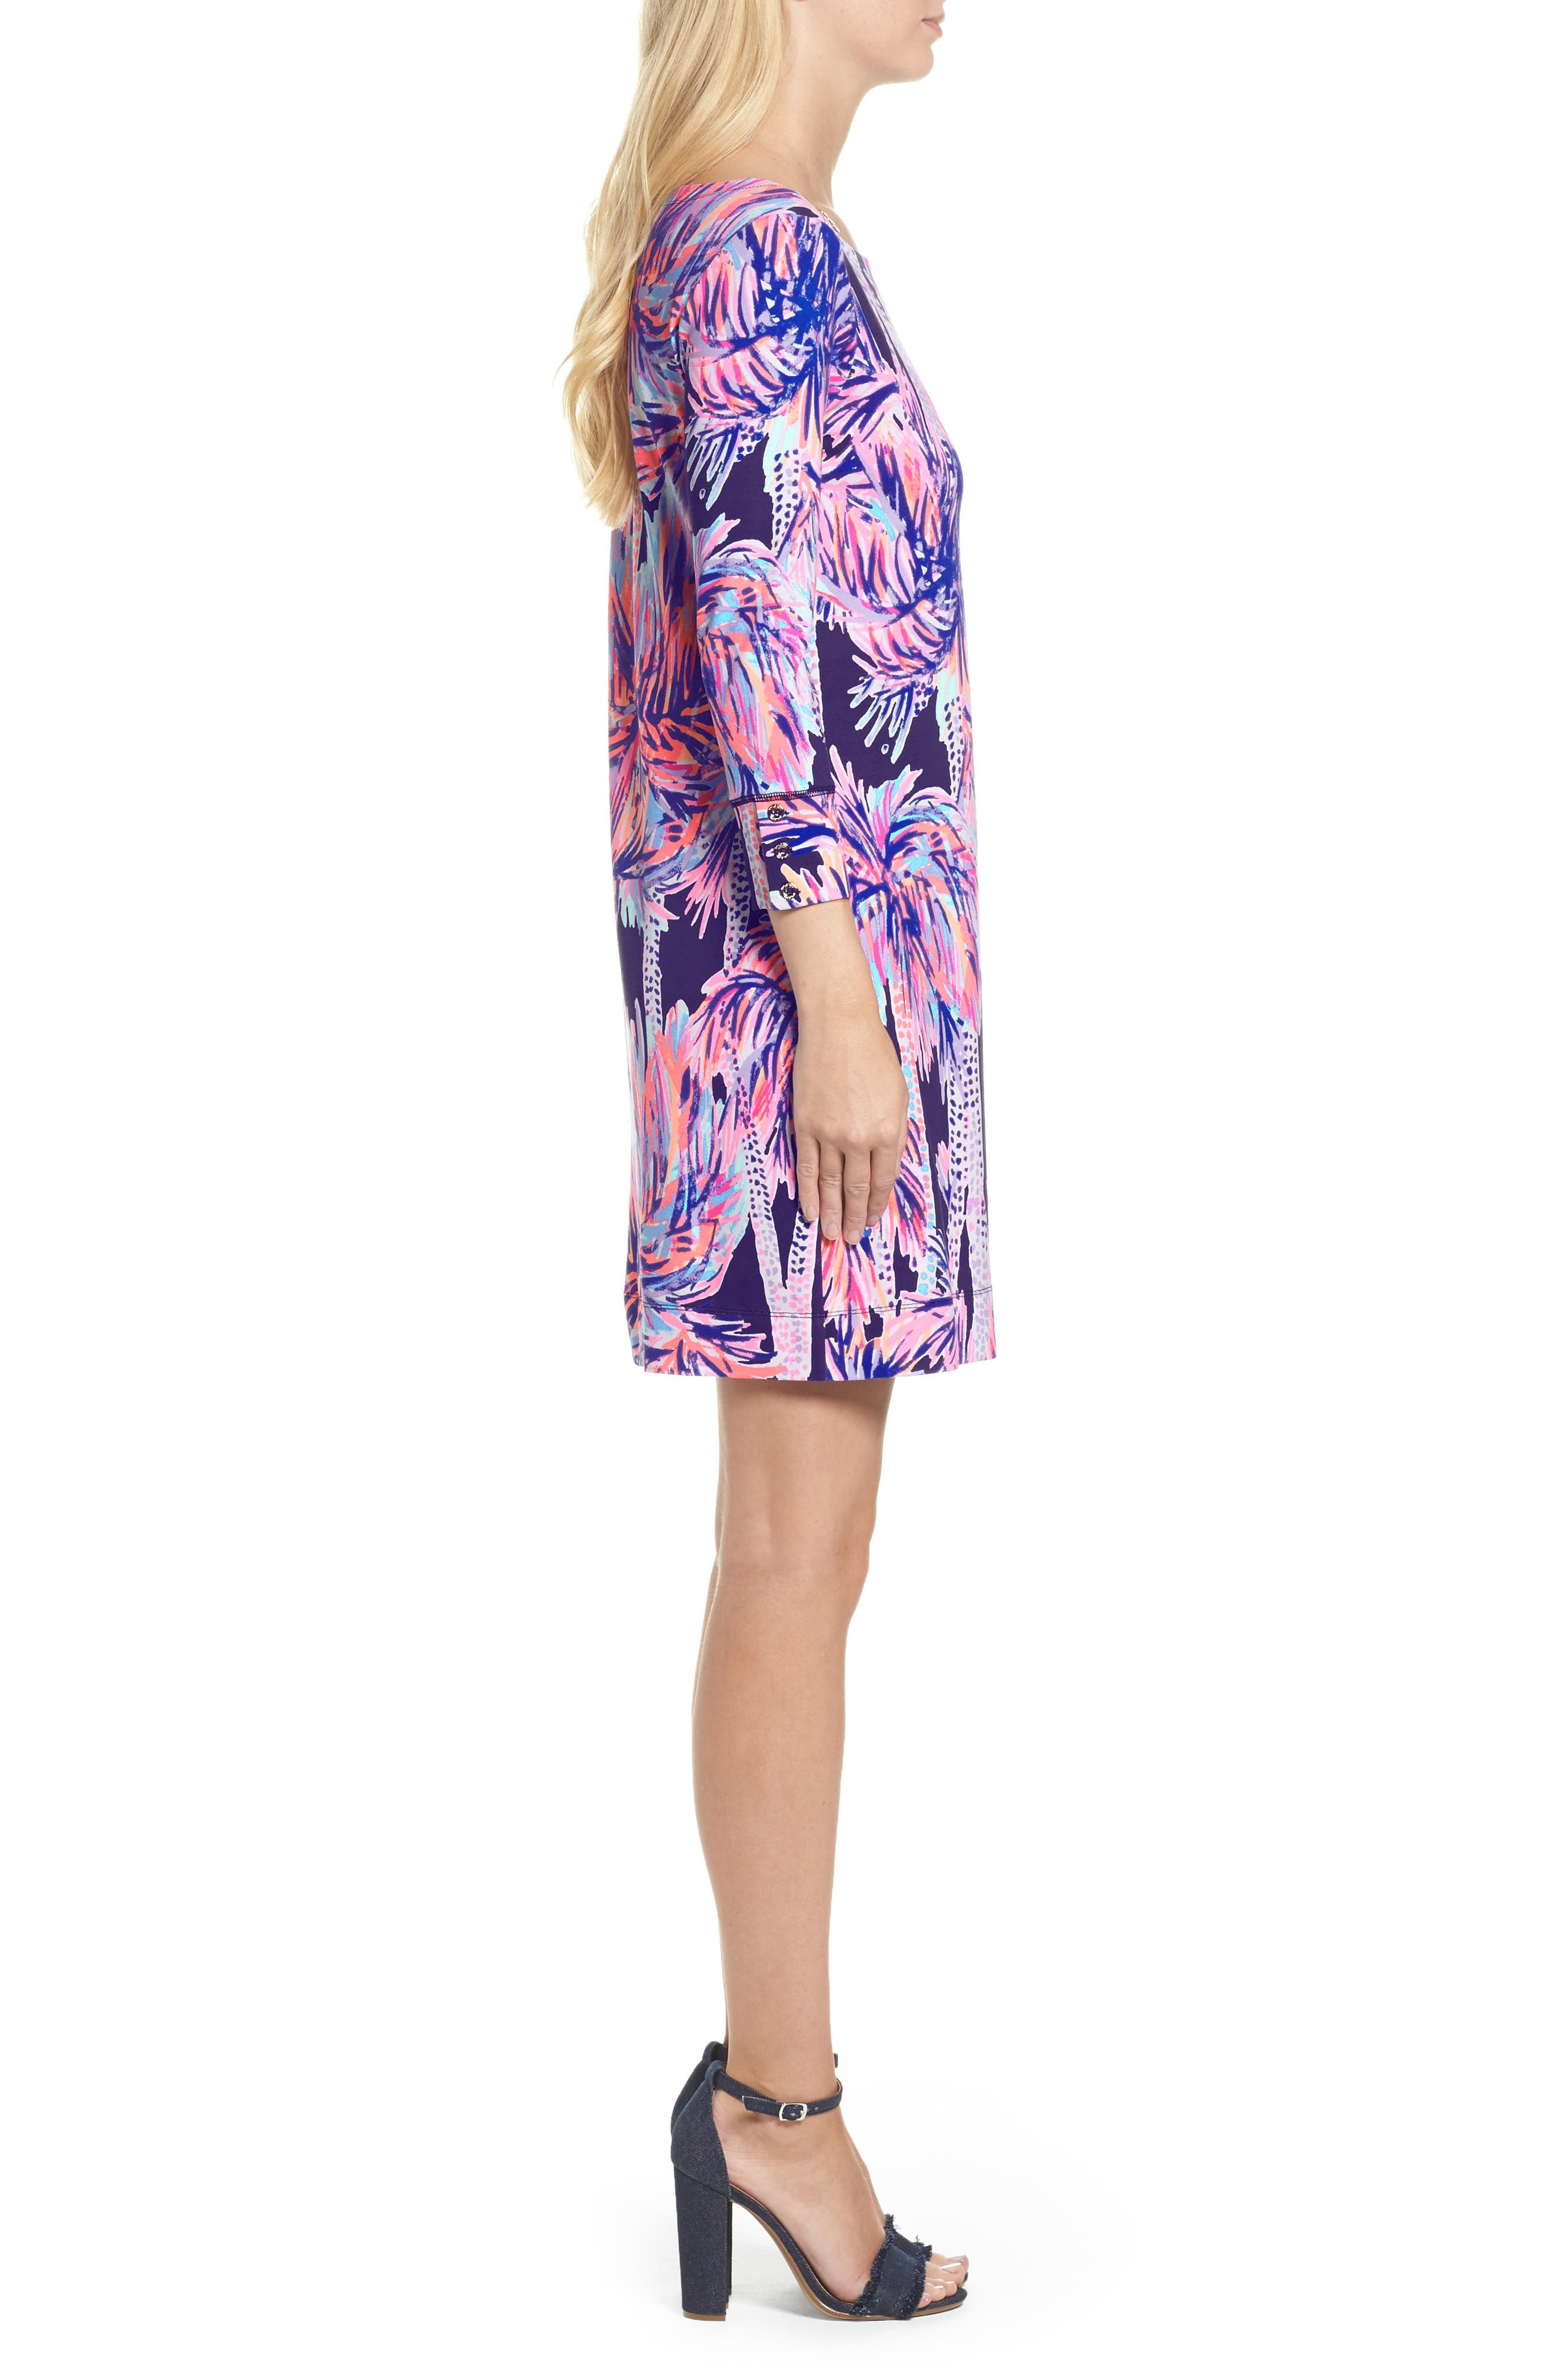 Sophie UPF 50+ Dress,                             Alternate thumbnail 3, color,                             Bright Navy Palms Up